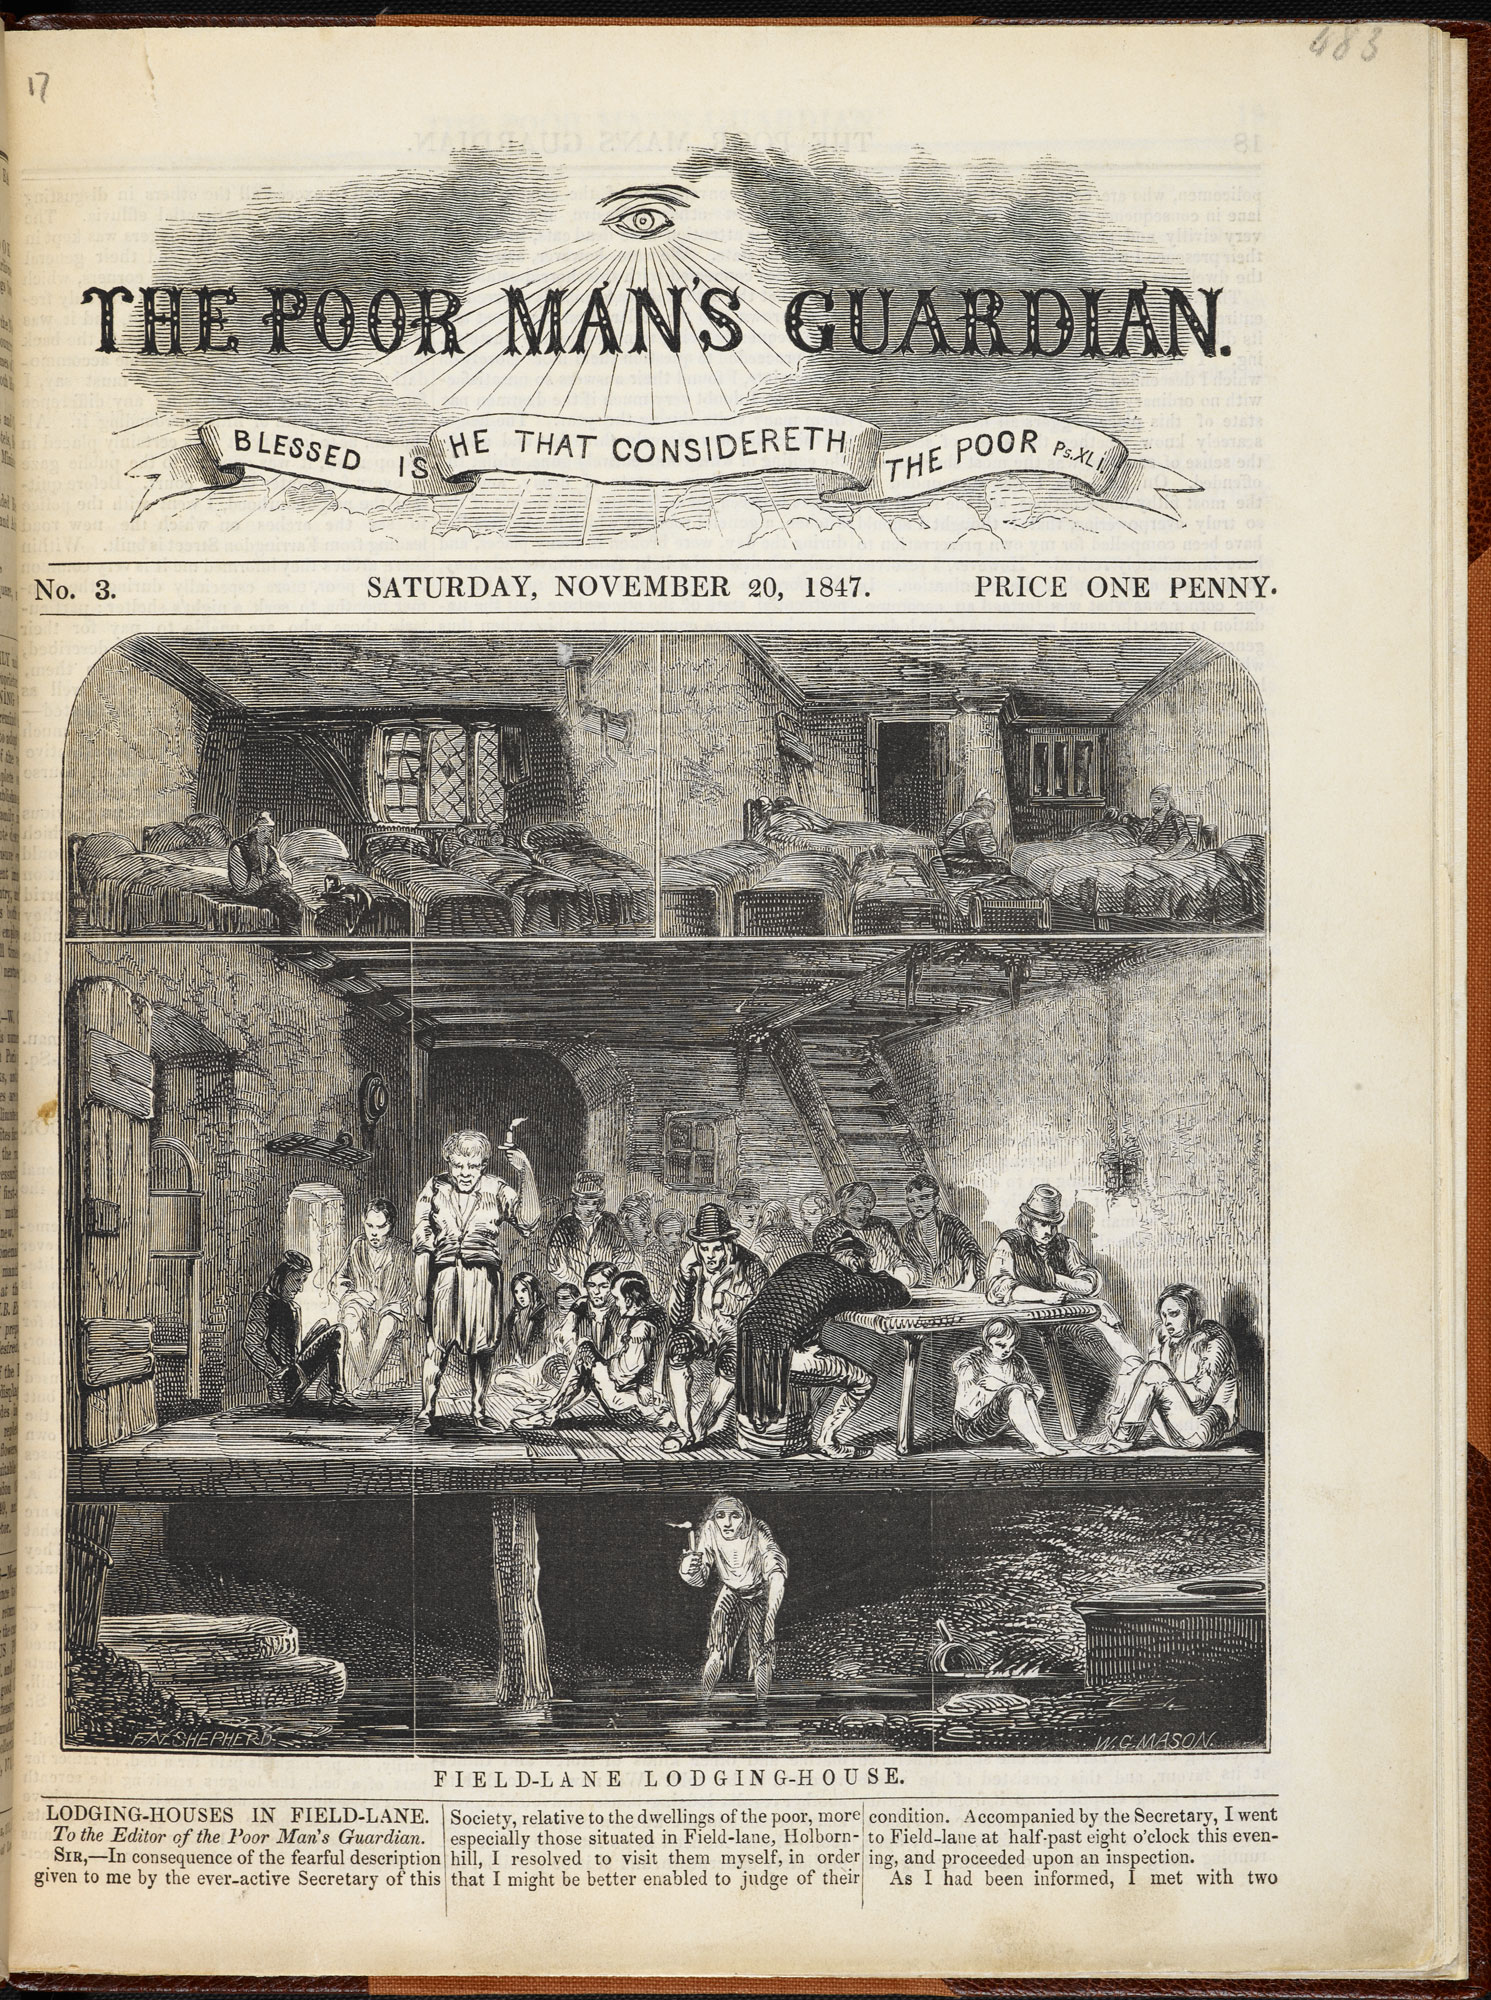 Field Lane Lodging-House' from The Poor Man's Guardian, 20 November 1847 [page: p. [17]]